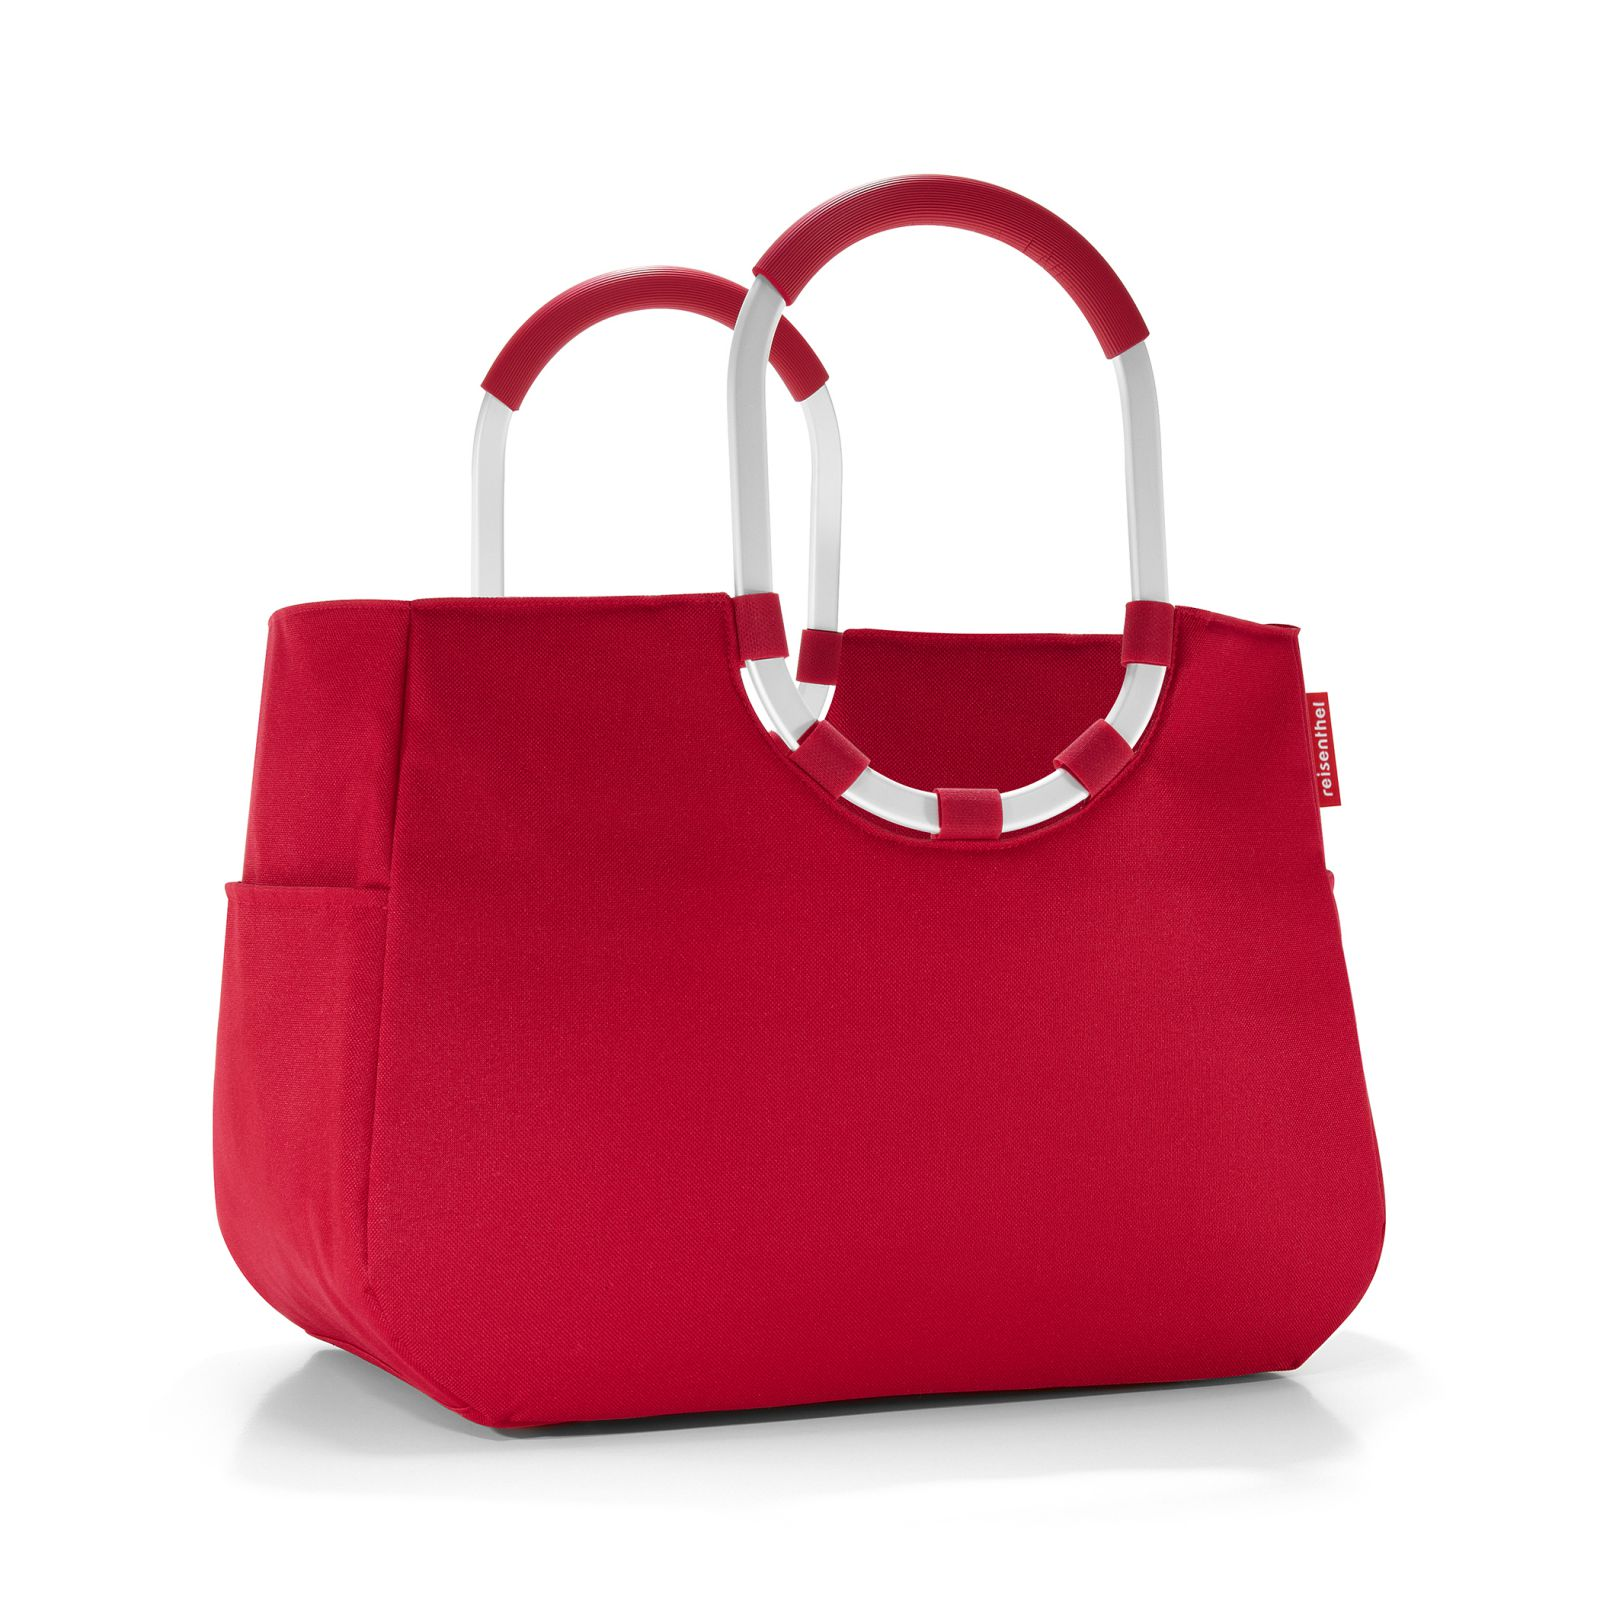 Reisenthel LoopShopper L Red E-batoh